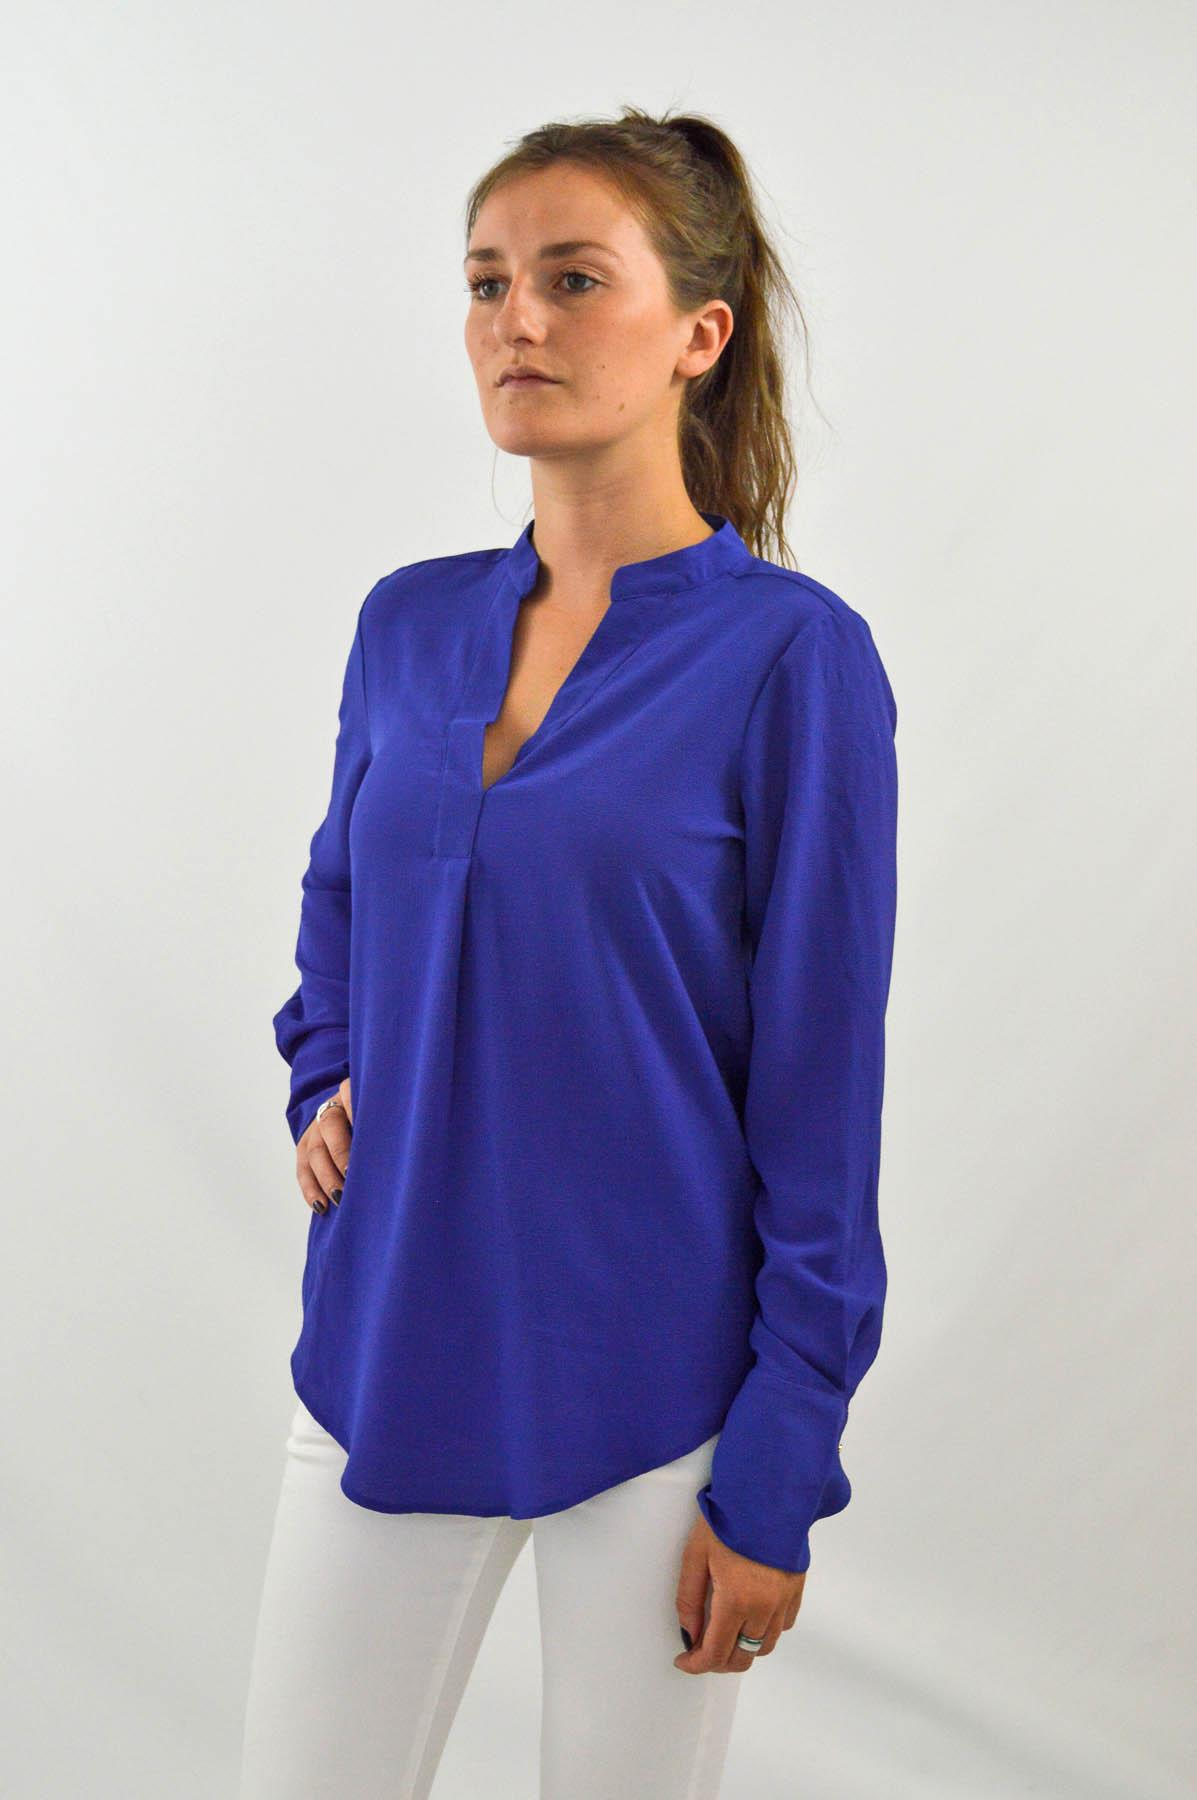 MARKS-amp-SPENCER-Womens-Long-Sleeve-V-Neck-Tunic-Blouse-Size-6-CLEARANCE thumbnail 19